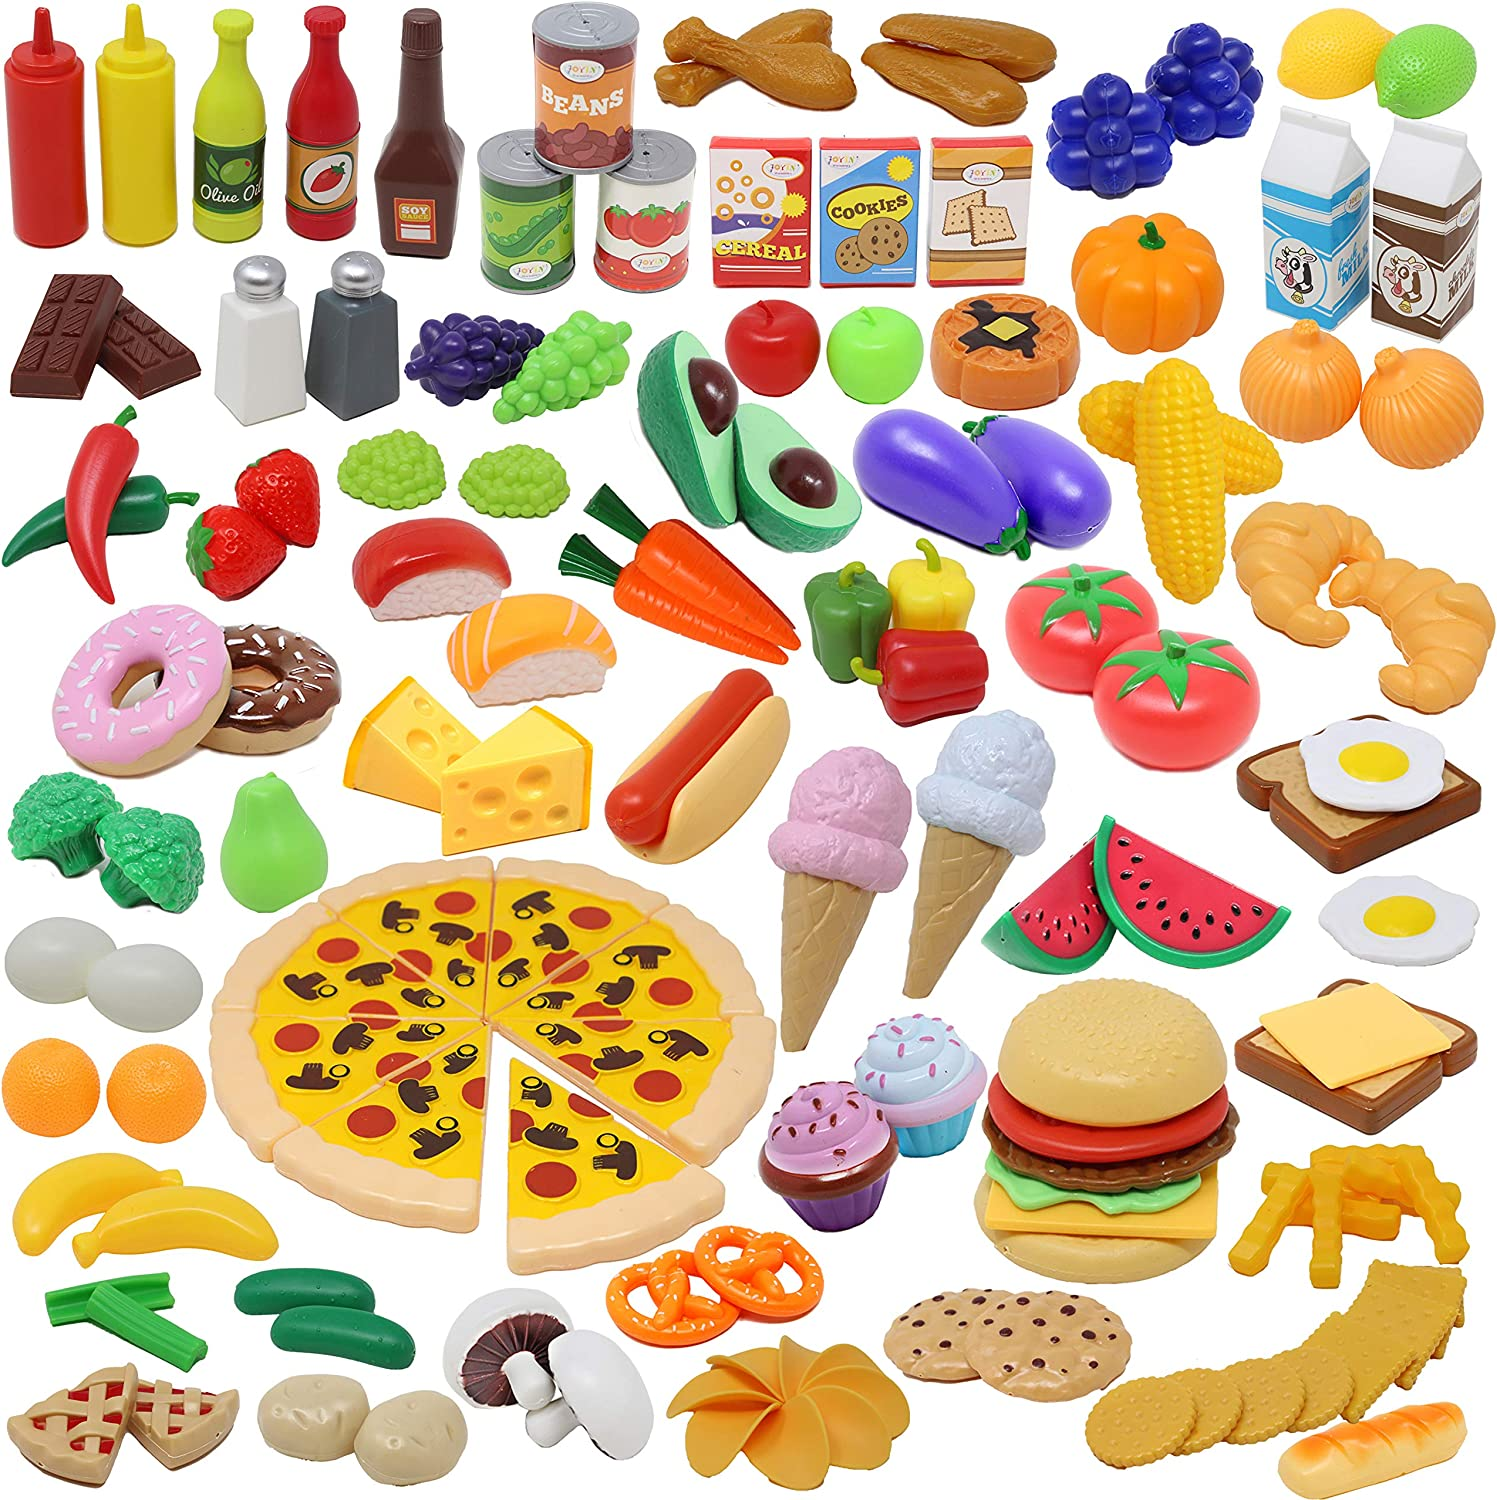 JOYIN Play Food Set 135 Pieces Play Kitchen Set for Market Educational Pretend Play, Food Playset, Kids Toddlers Toys, Kitchen Accessories Fake Food, Party Favor Christmas Stocking Stuffers